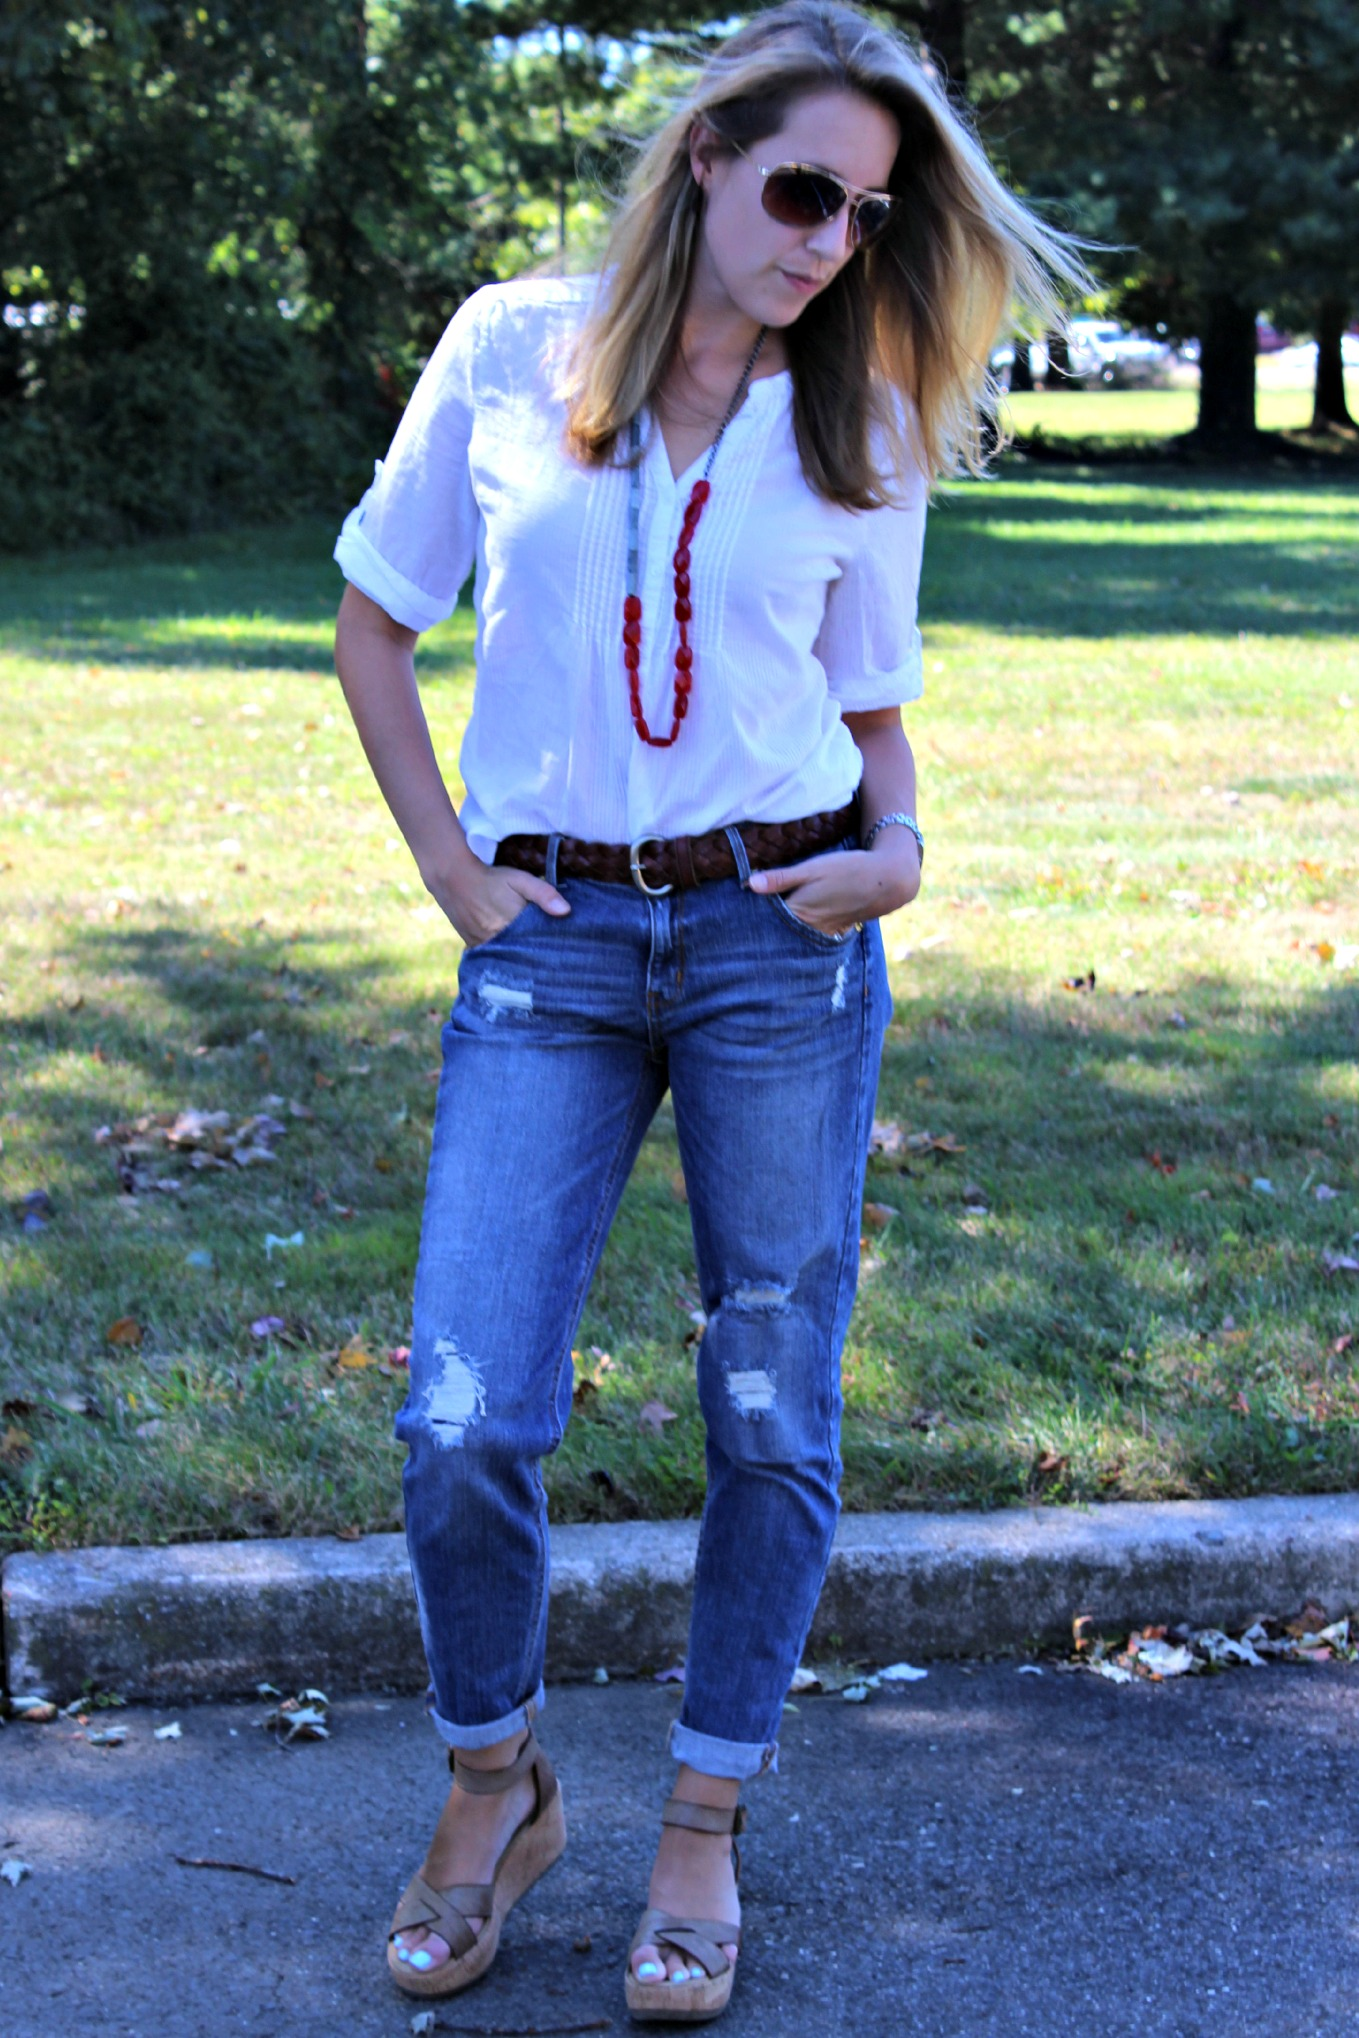 The In Between Fashion: Going From Summer to Fall